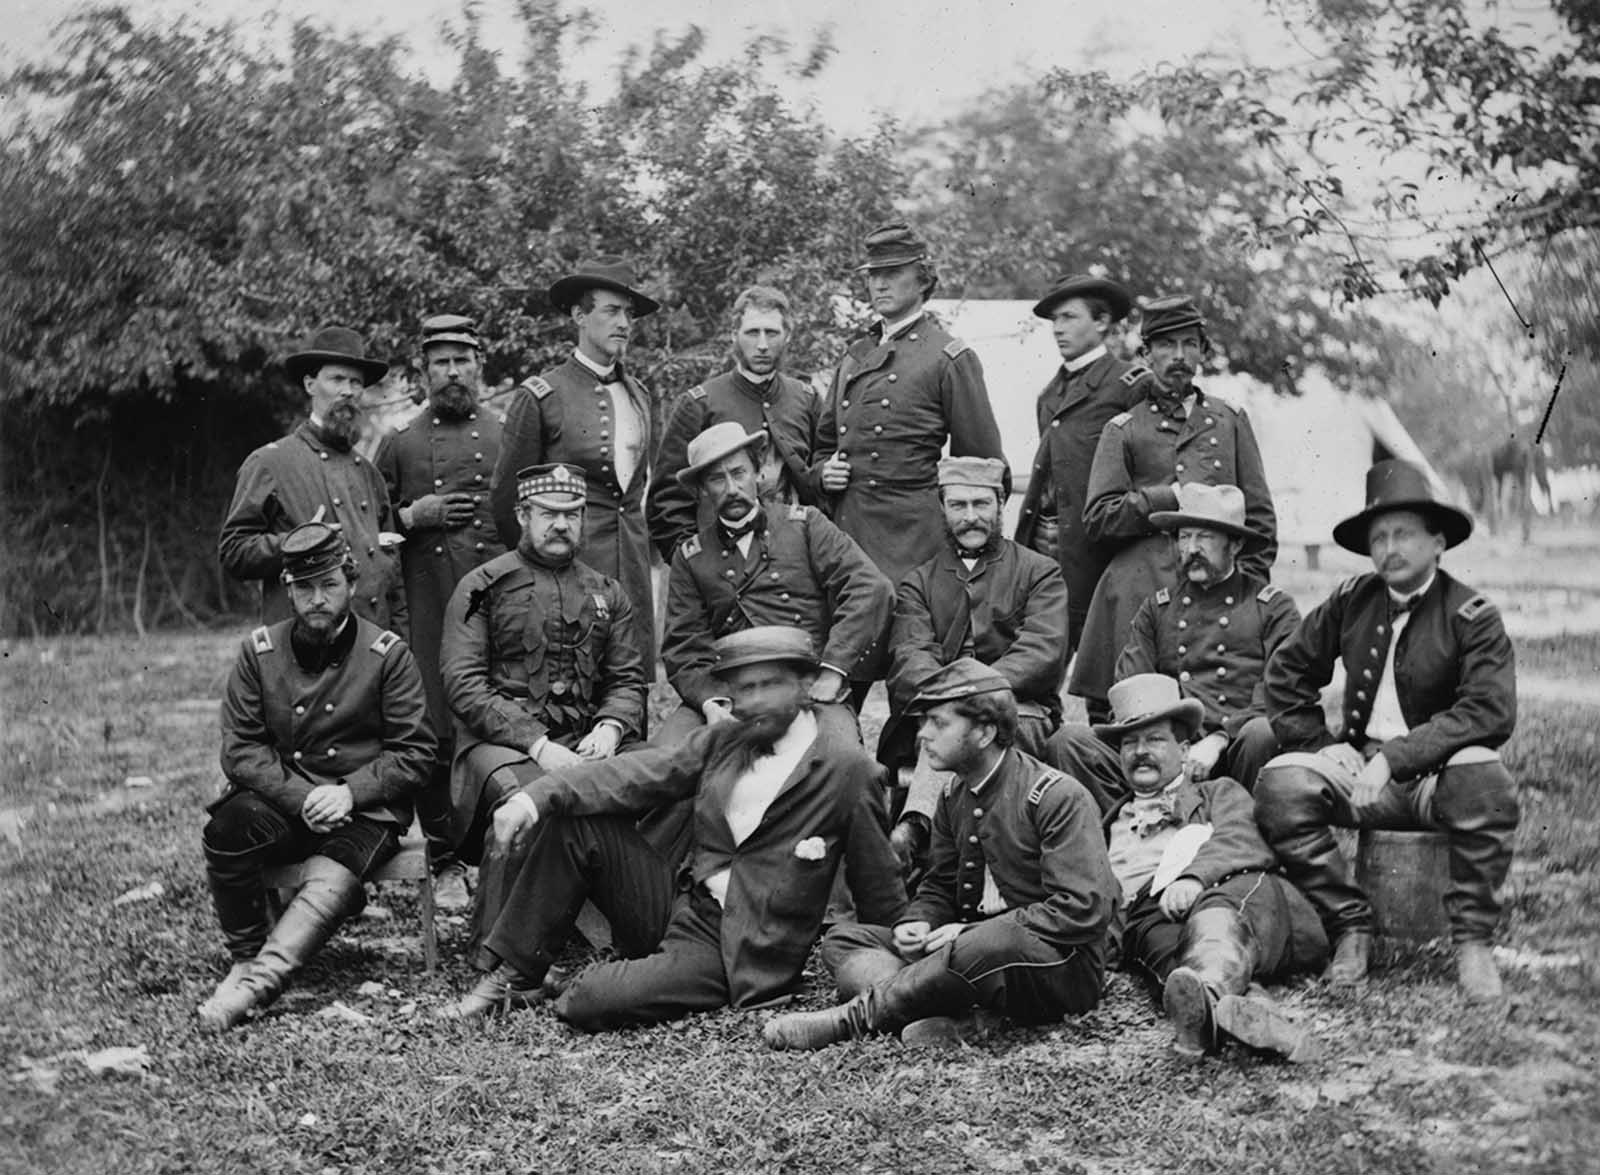 Lord (William) Abinger and a group of officers at headquarters, Army of the Potomac, near Falmouth, Virginia, in April of 1863.